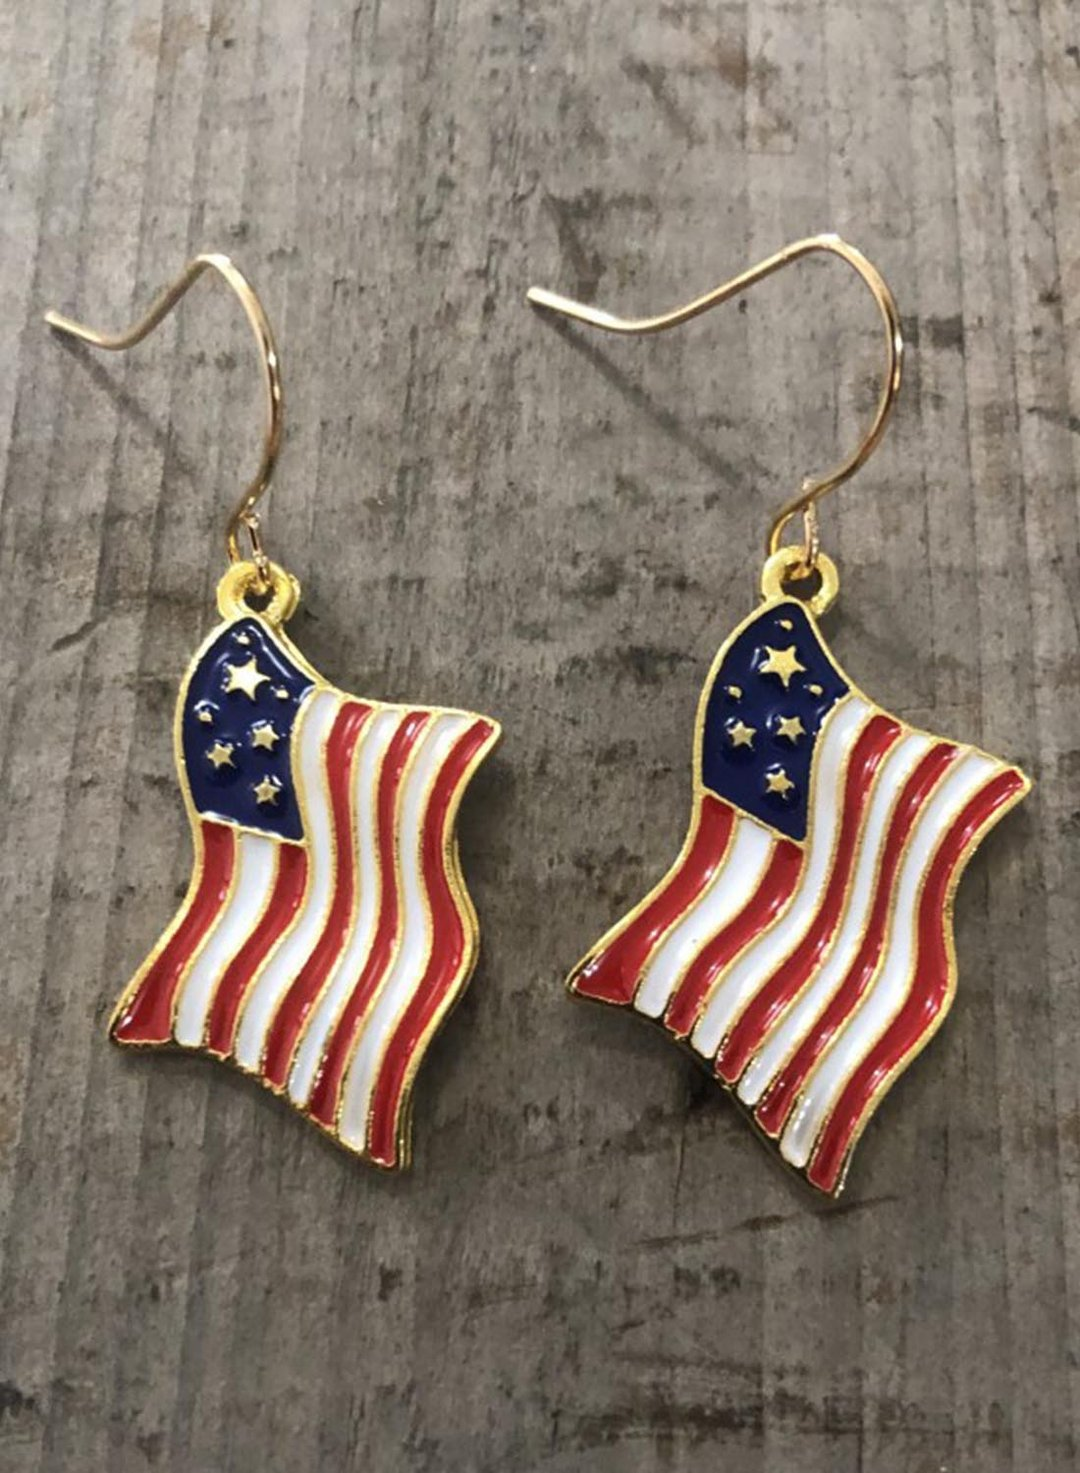 Blue Women's Earrings Independence Day Flag Alloy Earrings LC012438-5